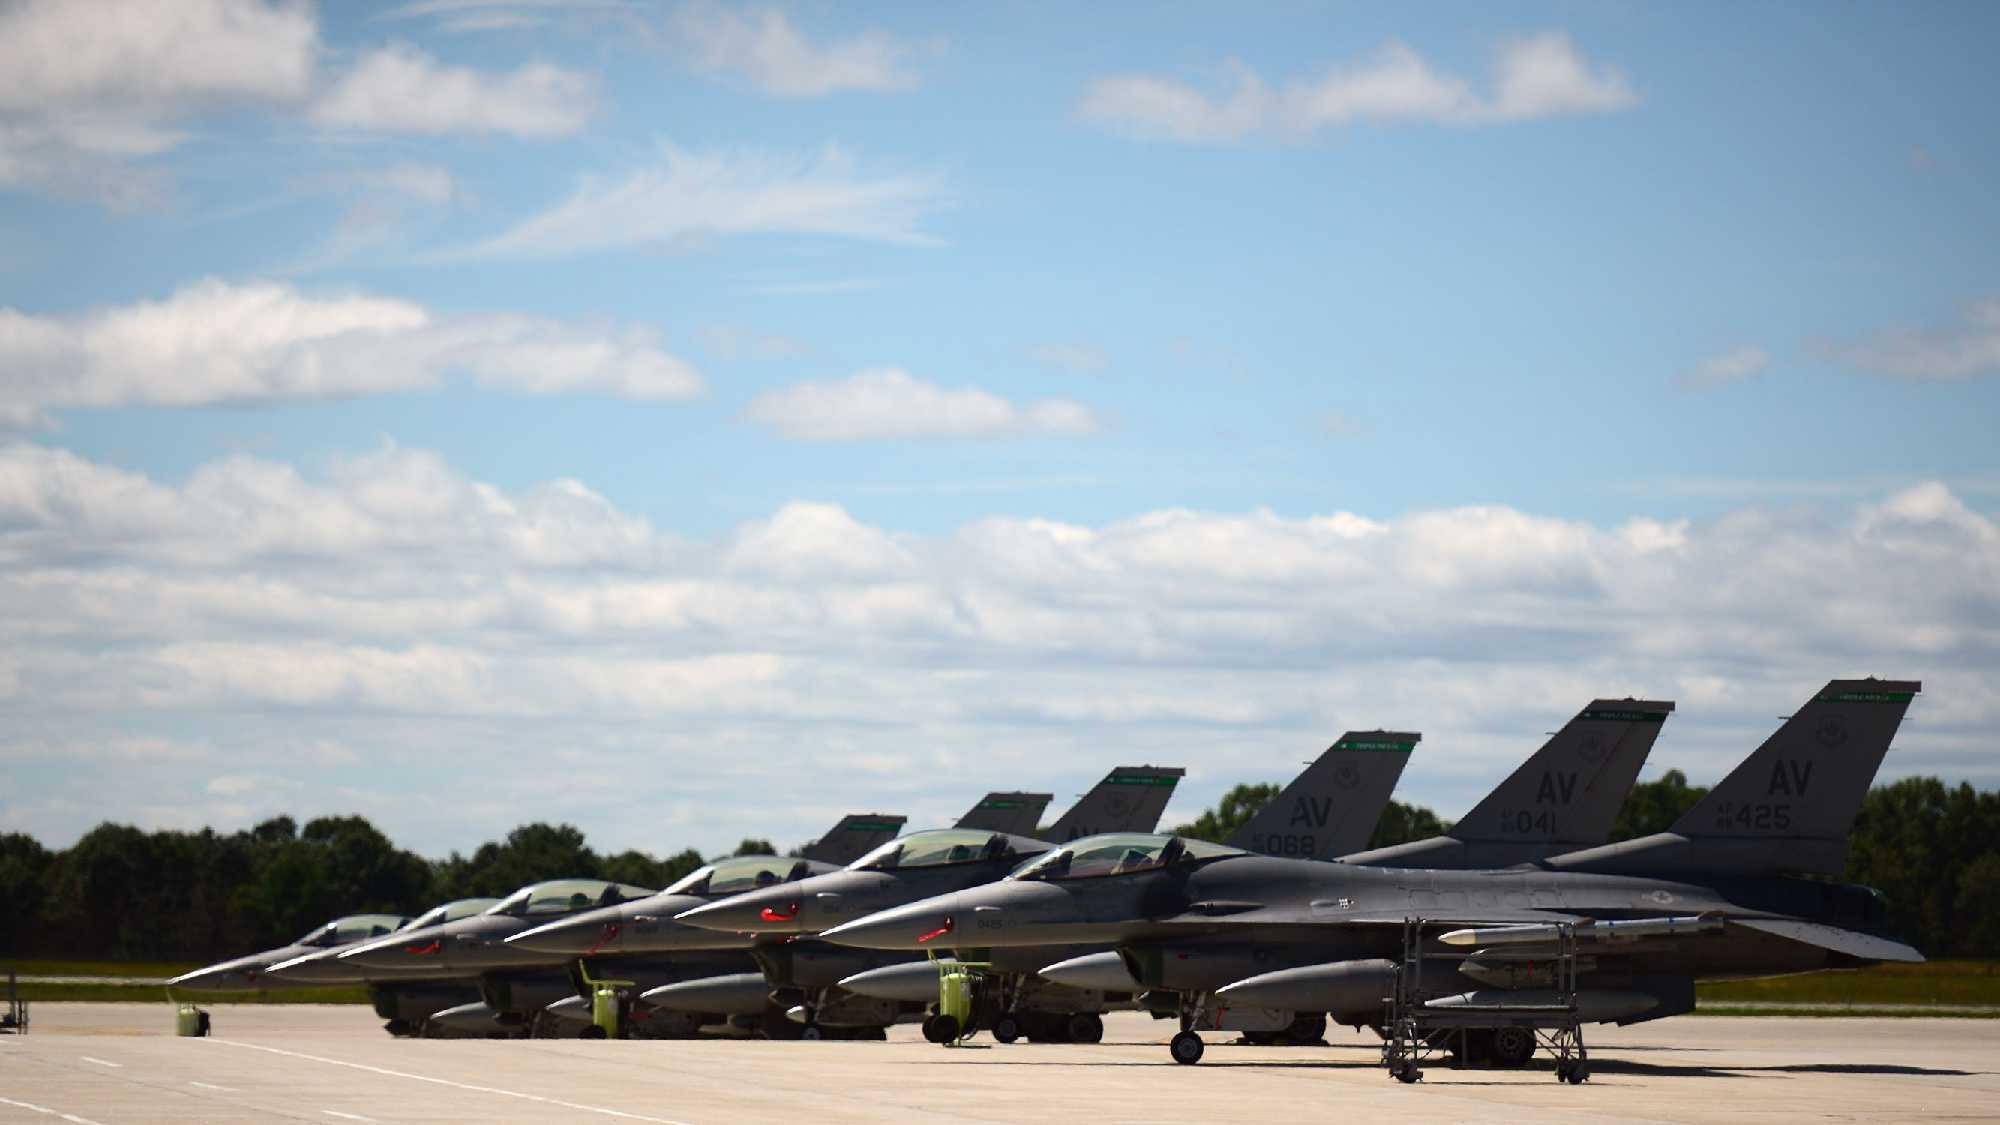 U.S. Air Force F-16 Fighting Falcons, 555th Fighting Squadron, Aviano Air Base, Italy, on the parking ramp of Pease Air National Guard Base, N.H., Aug. 17, 2016. The aircrew landed in the early morning hours for fuel and crew rest.